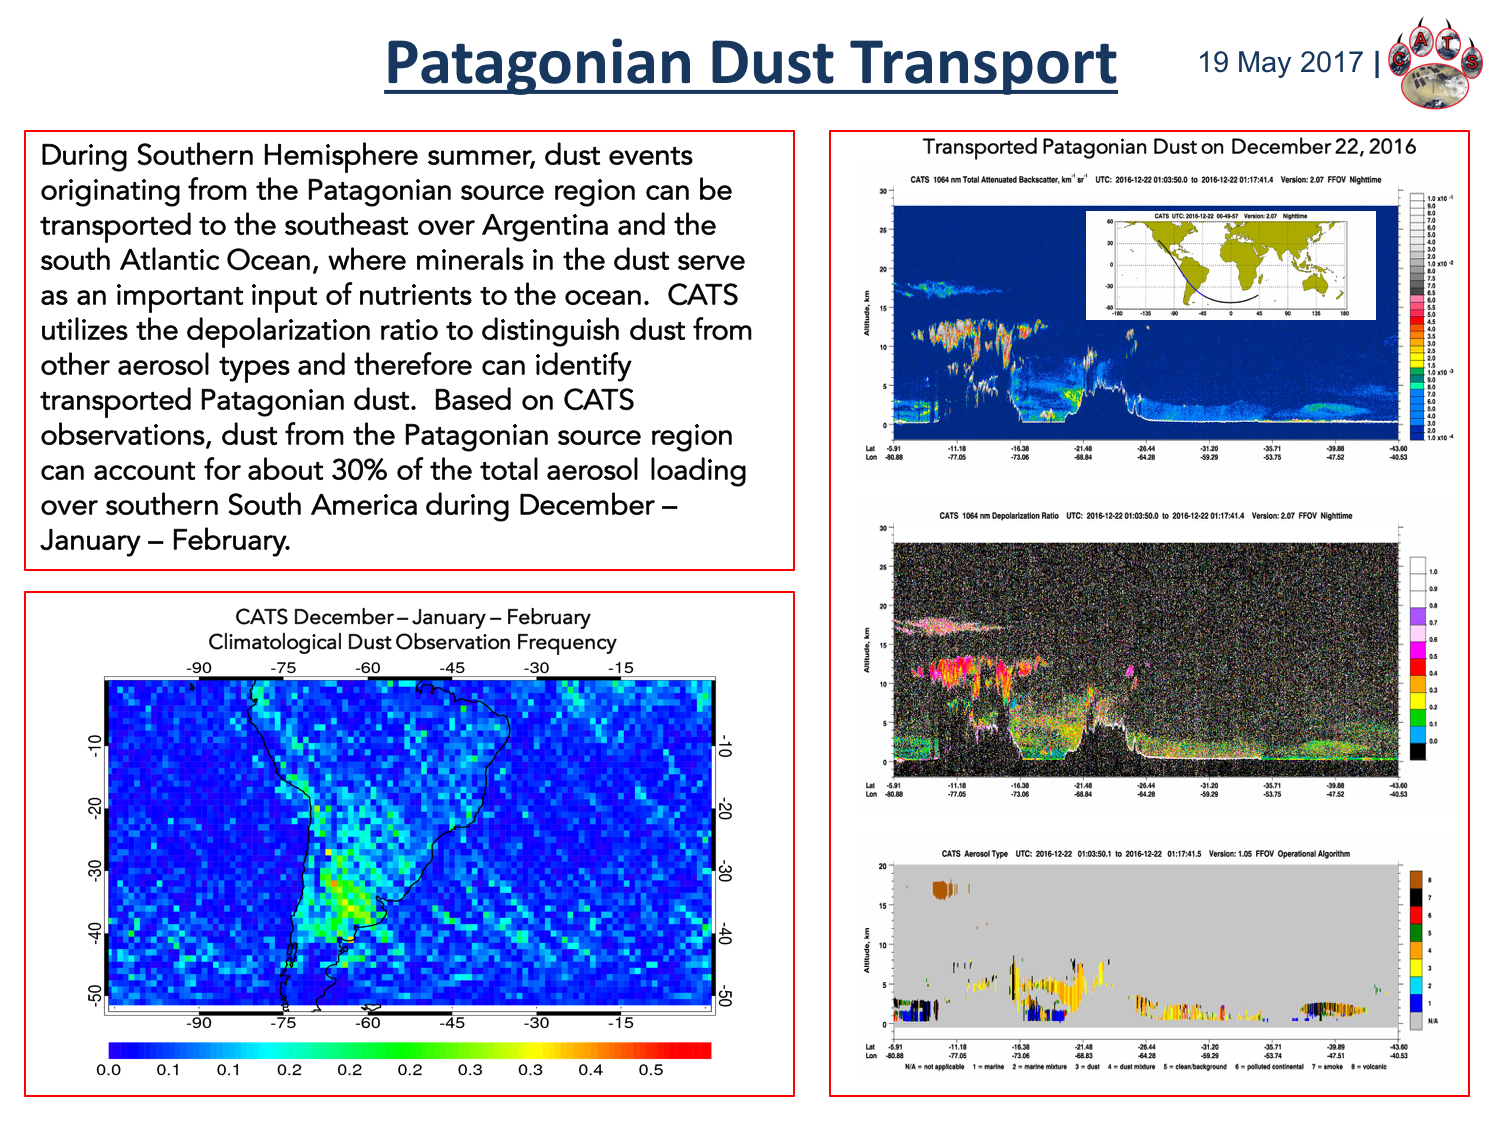 Patagonian Dust